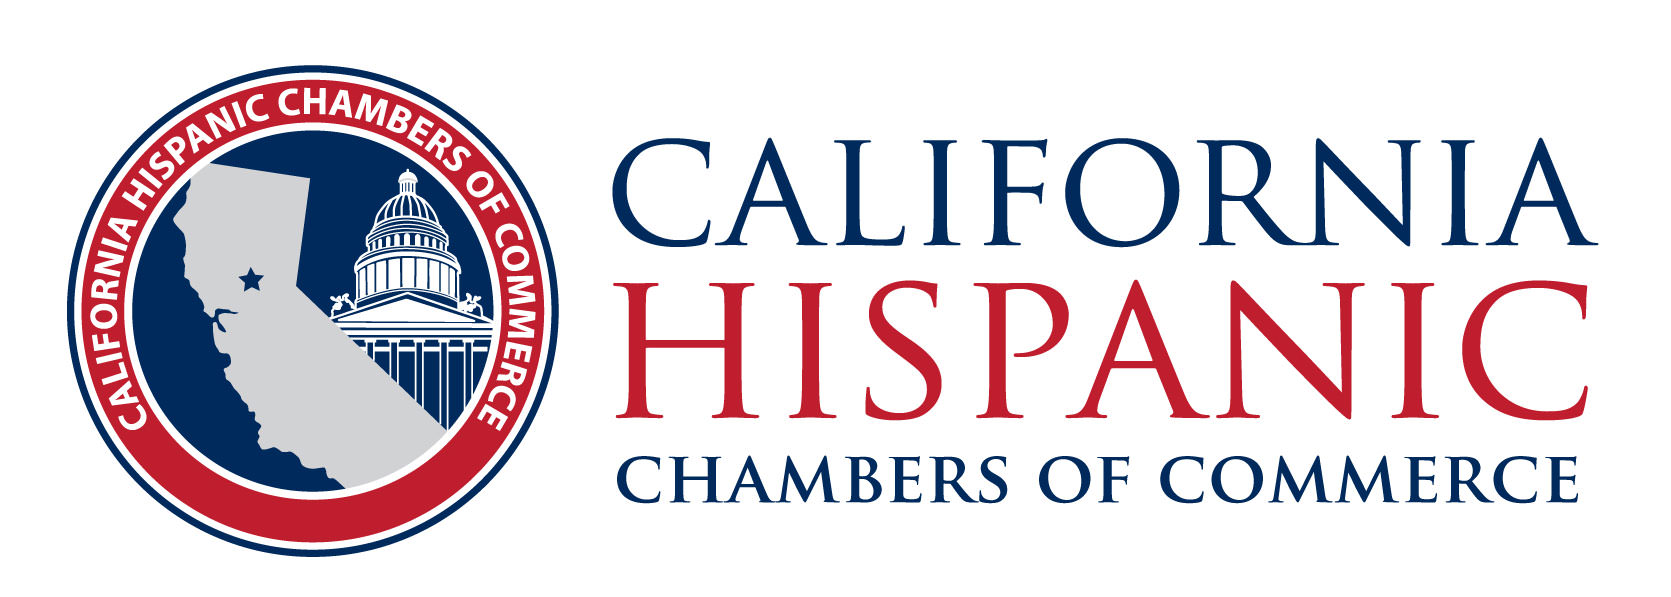 California Hispanic Chambers of Commerce opens new office in Sacramento